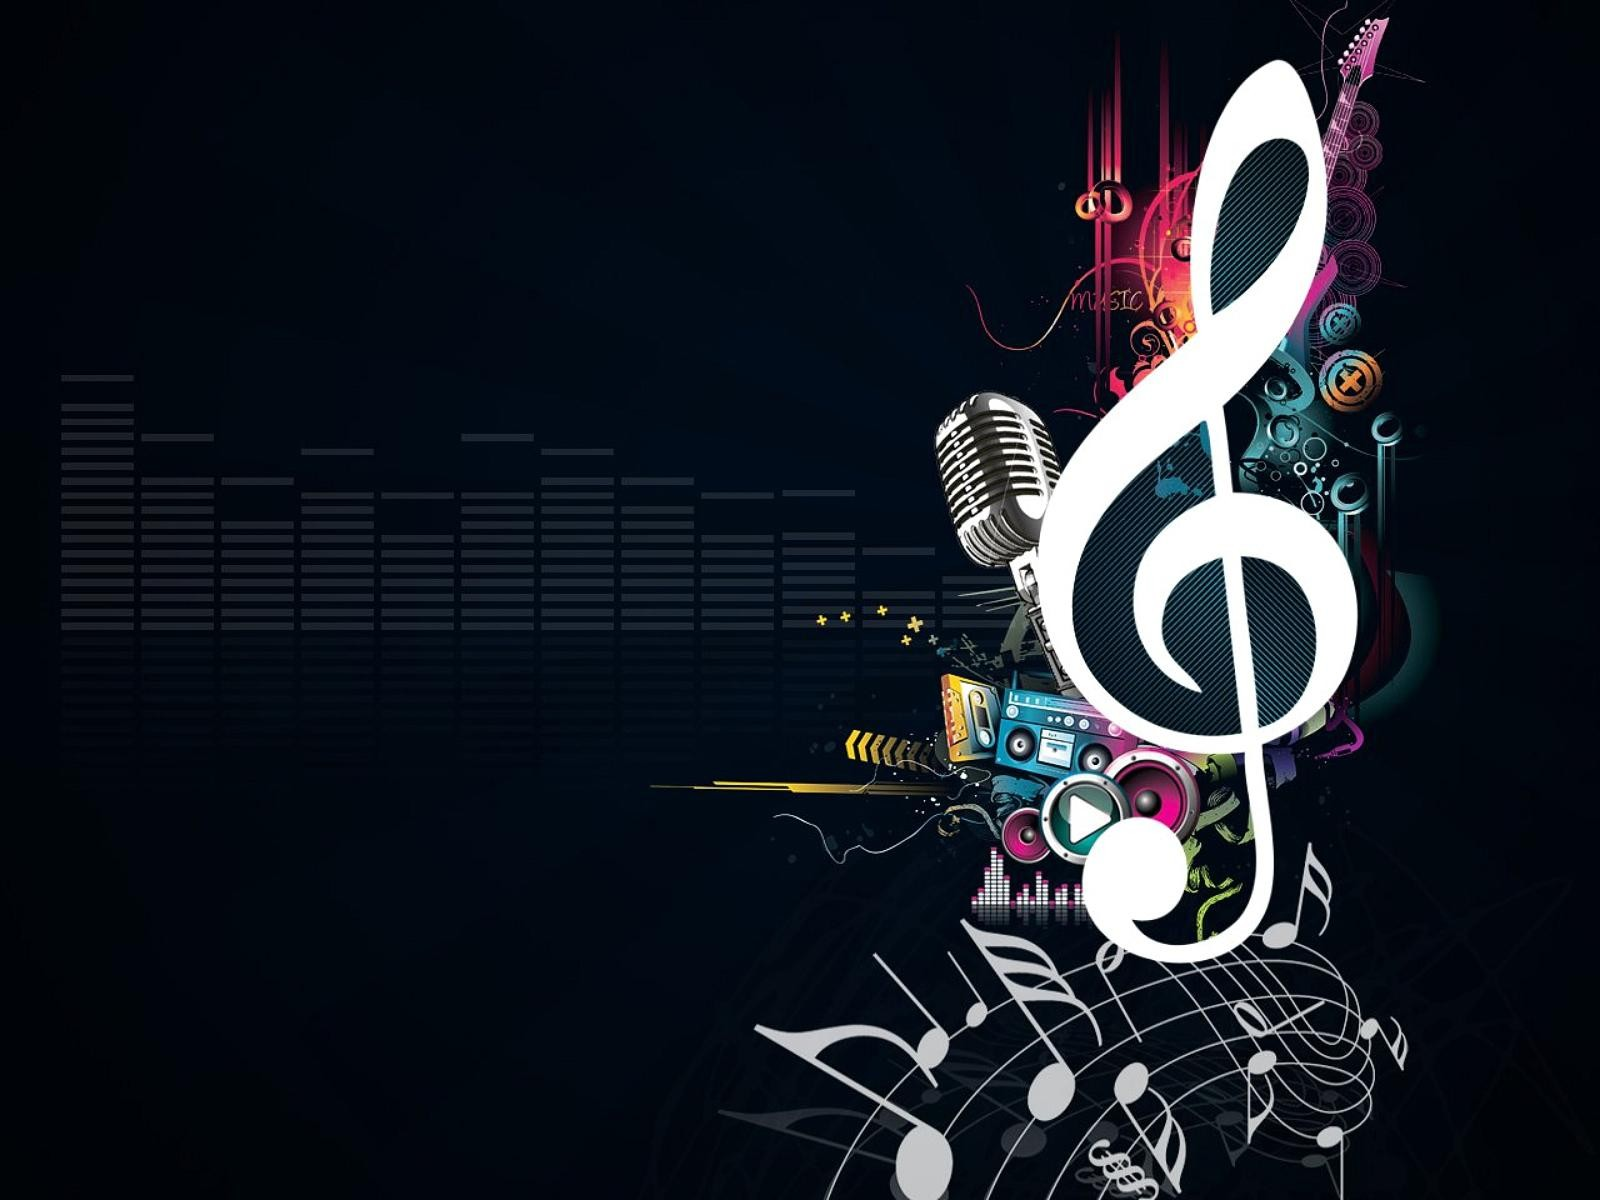 music-wallpapers-3.